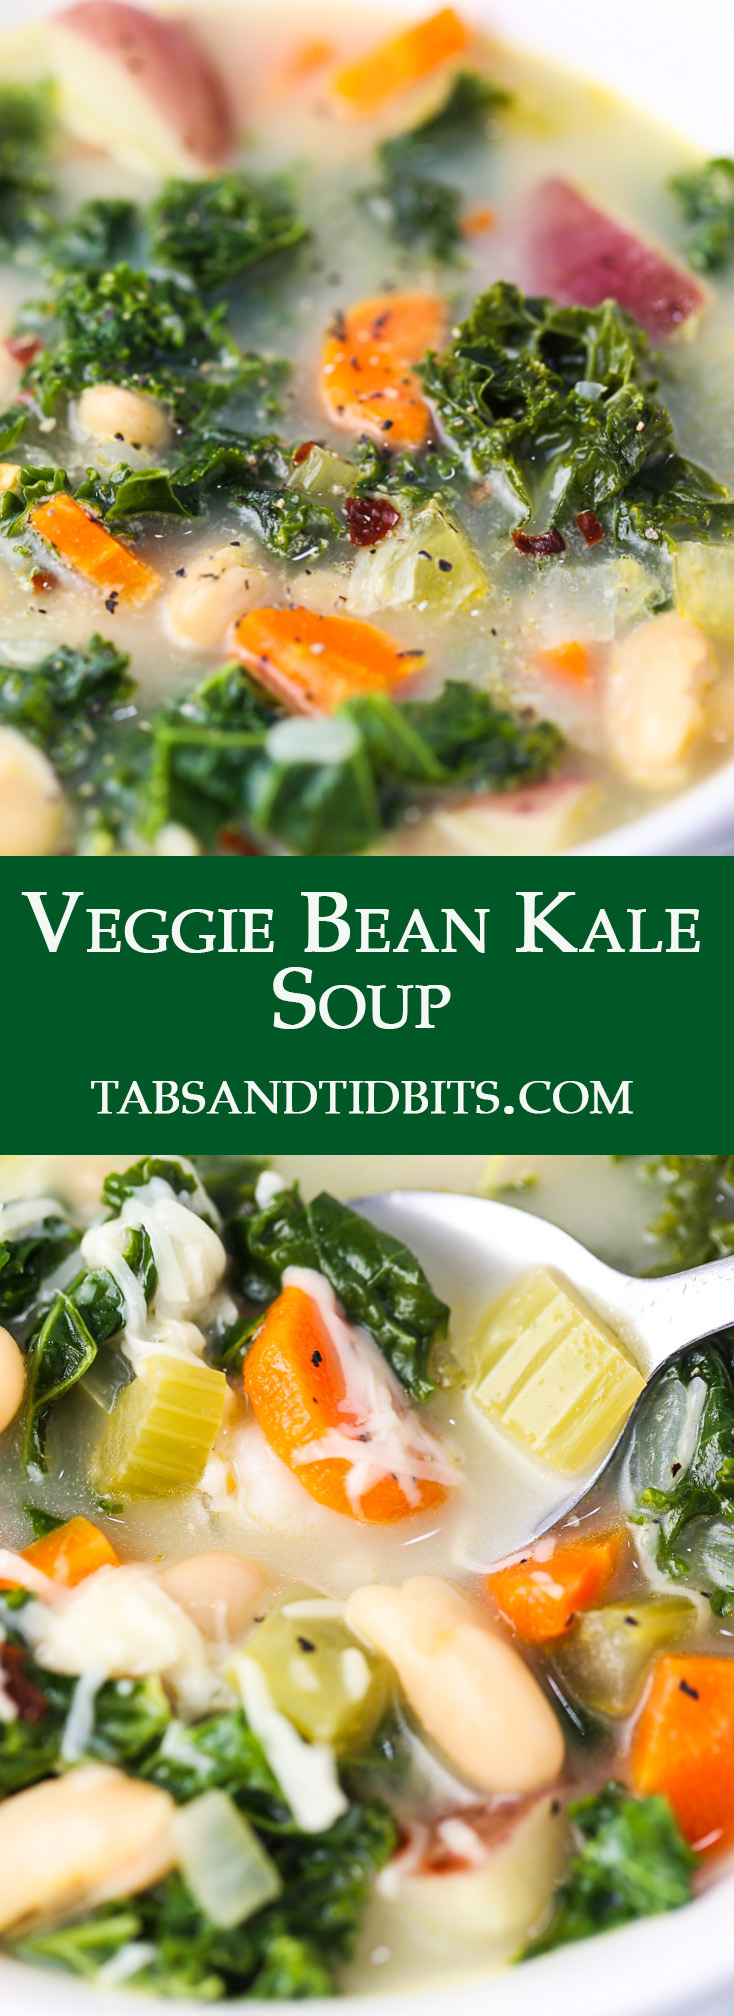 This Veggie Bean Kale is soup is nutritious and protein packed with a hint of spice!